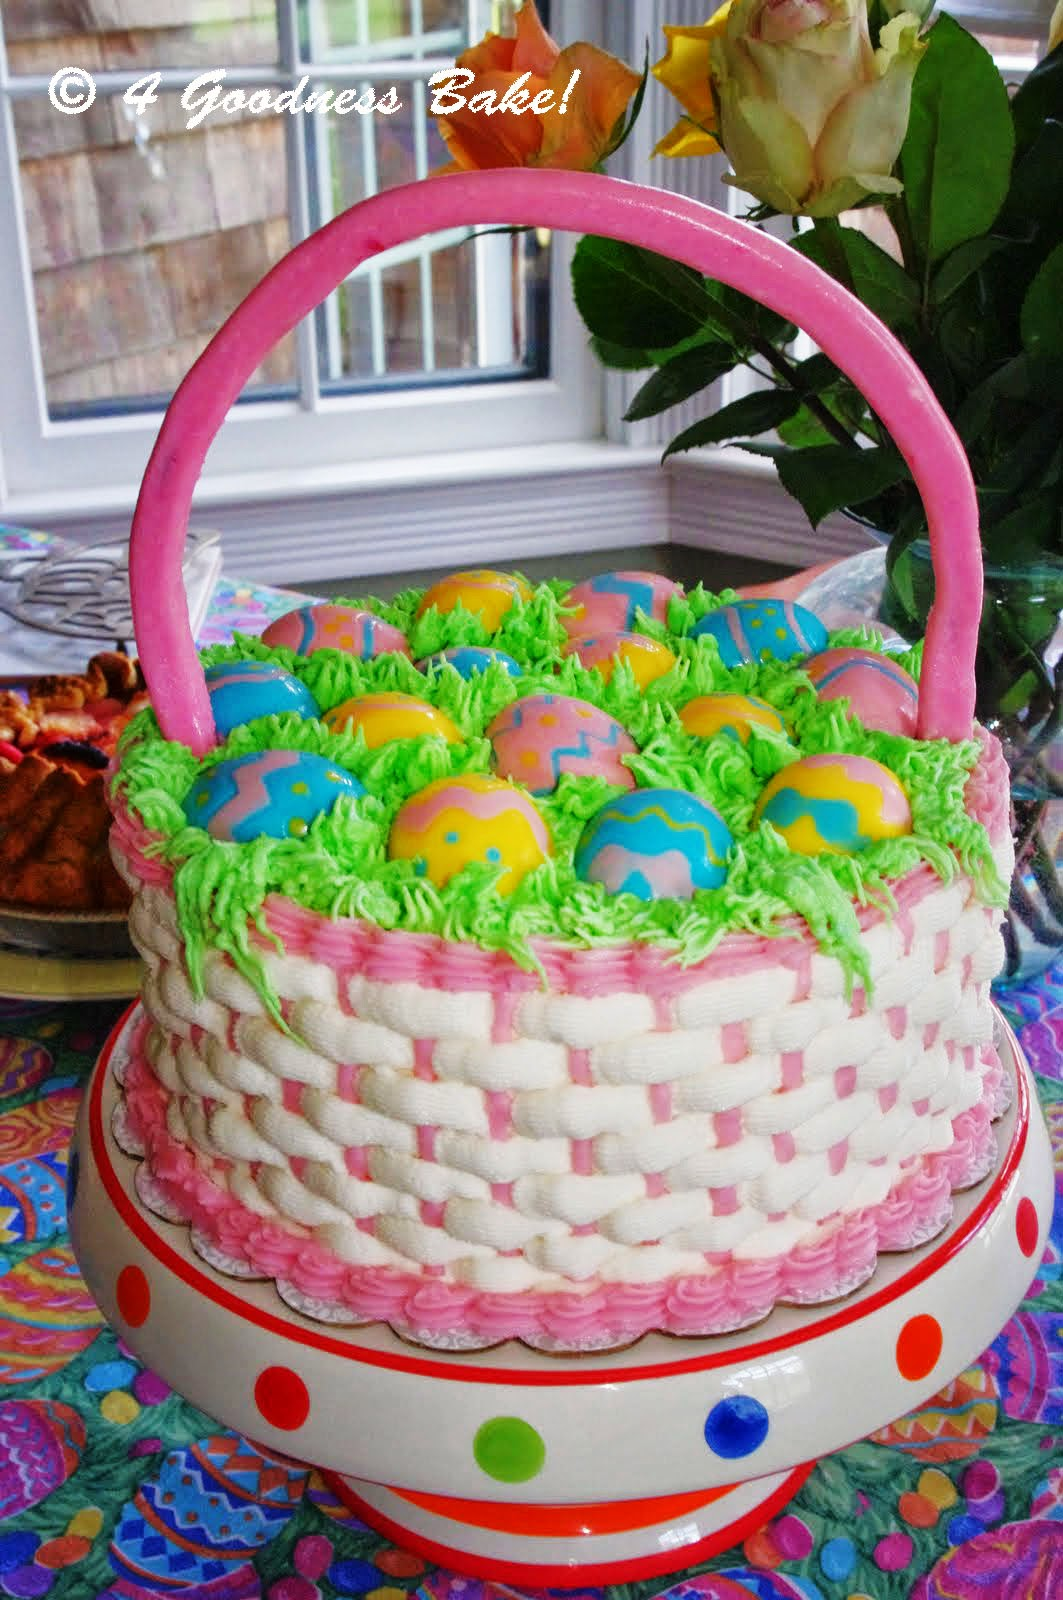 4 goodness bake easter egg basket cake easter egg basket cake negle Gallery